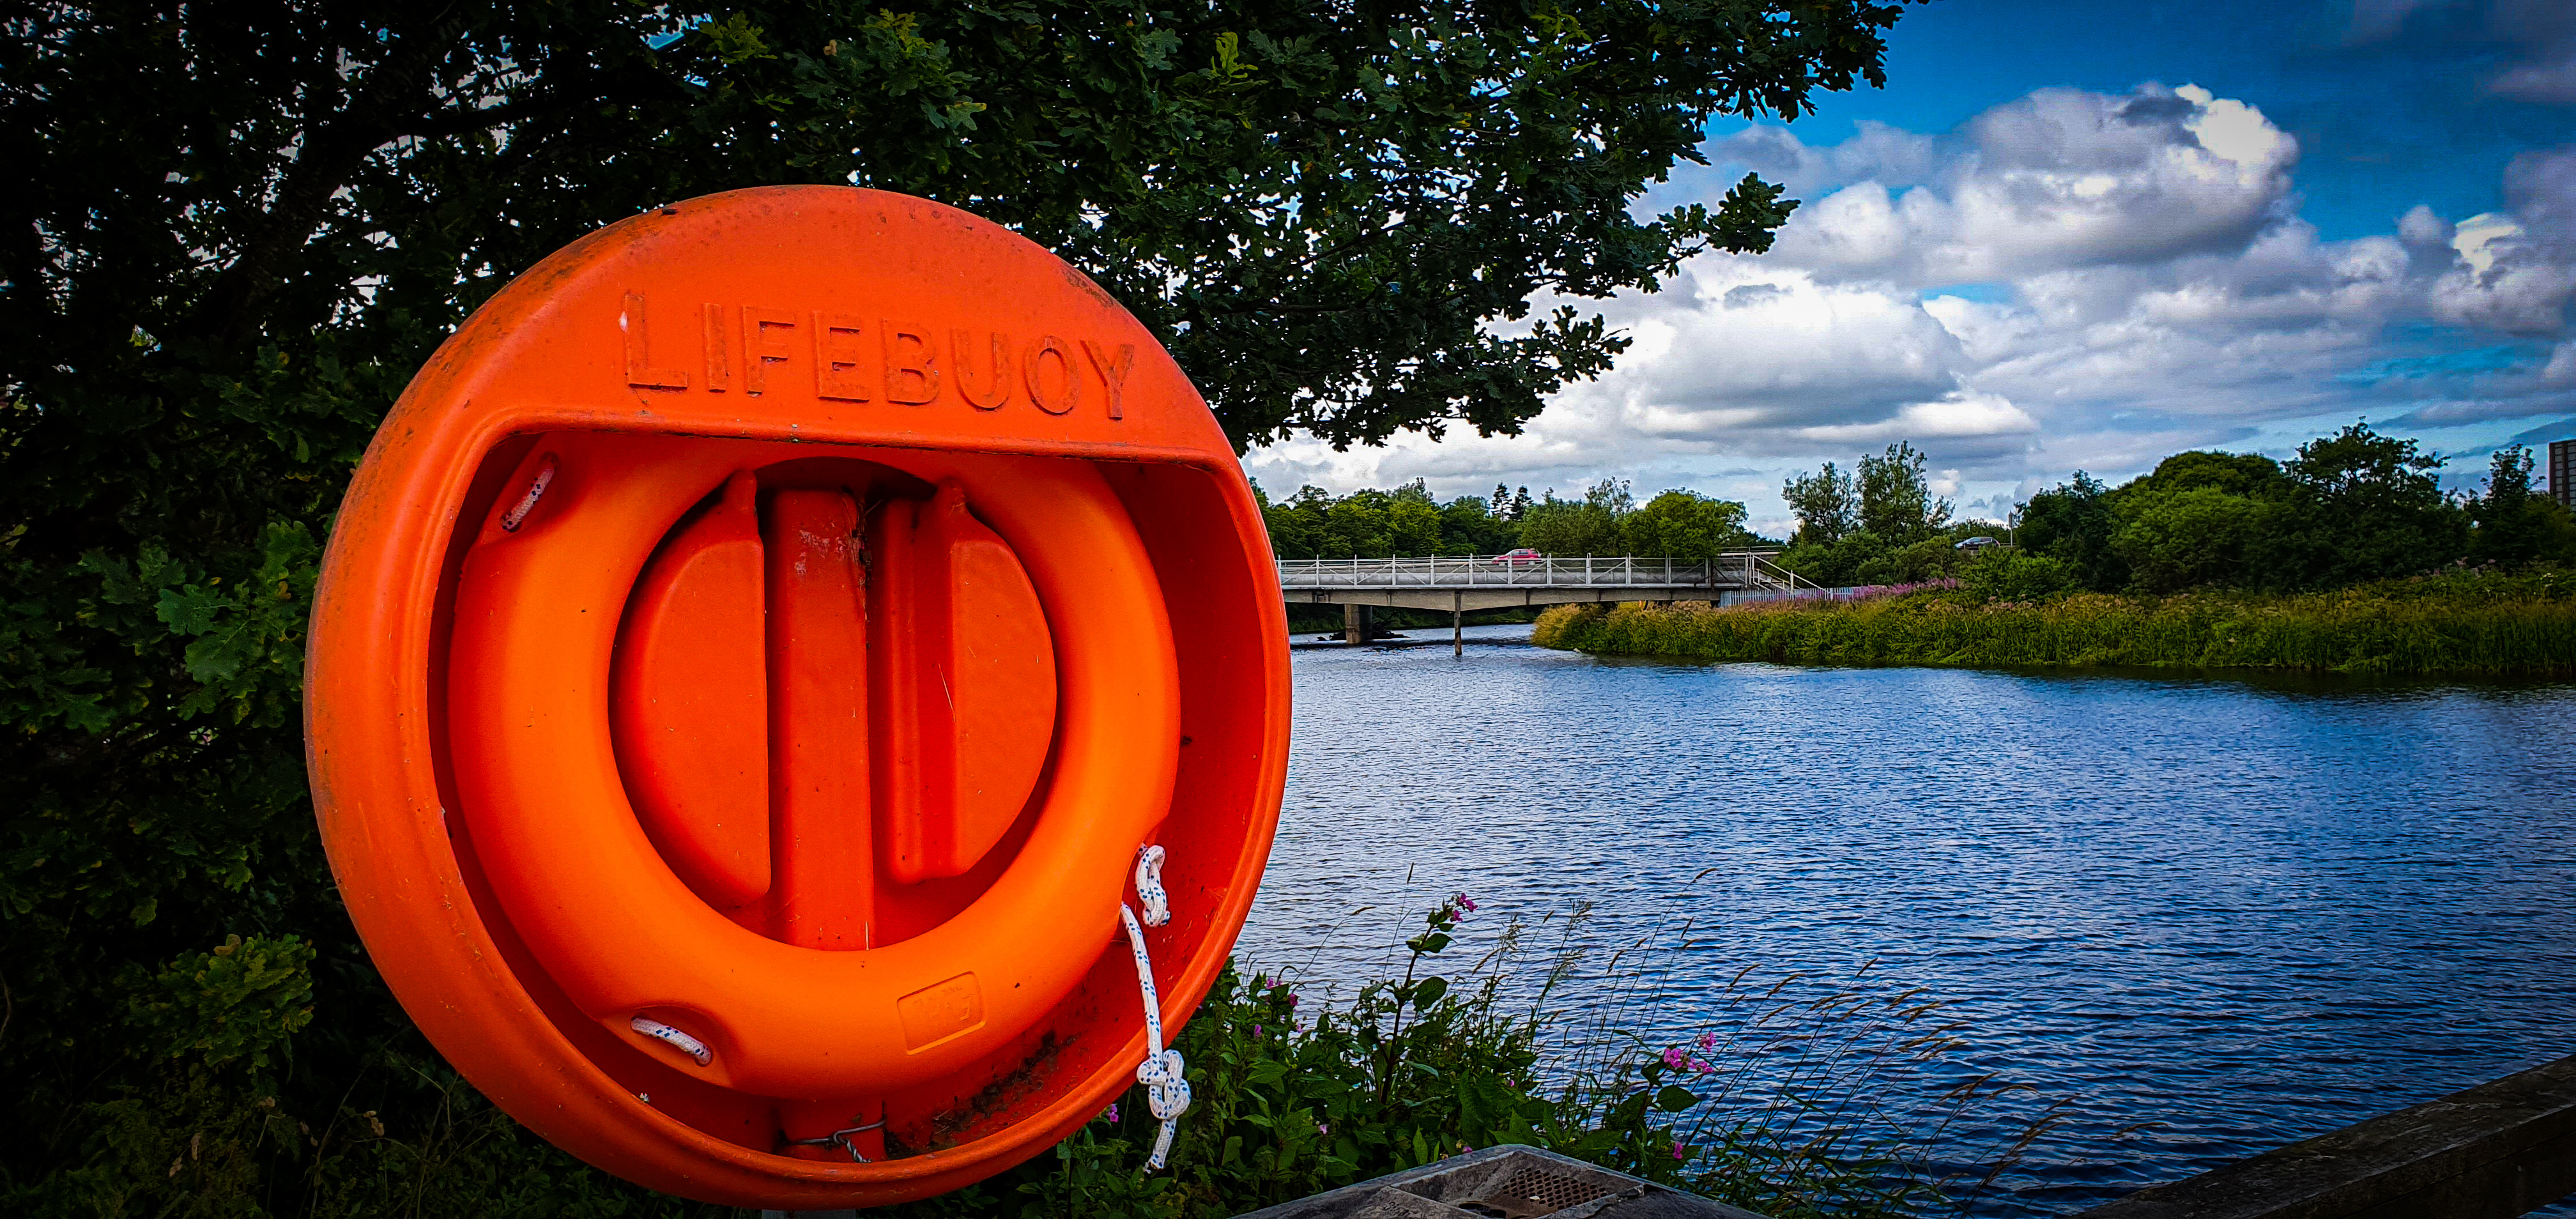 A Life Buoy ring with a body of water in the background